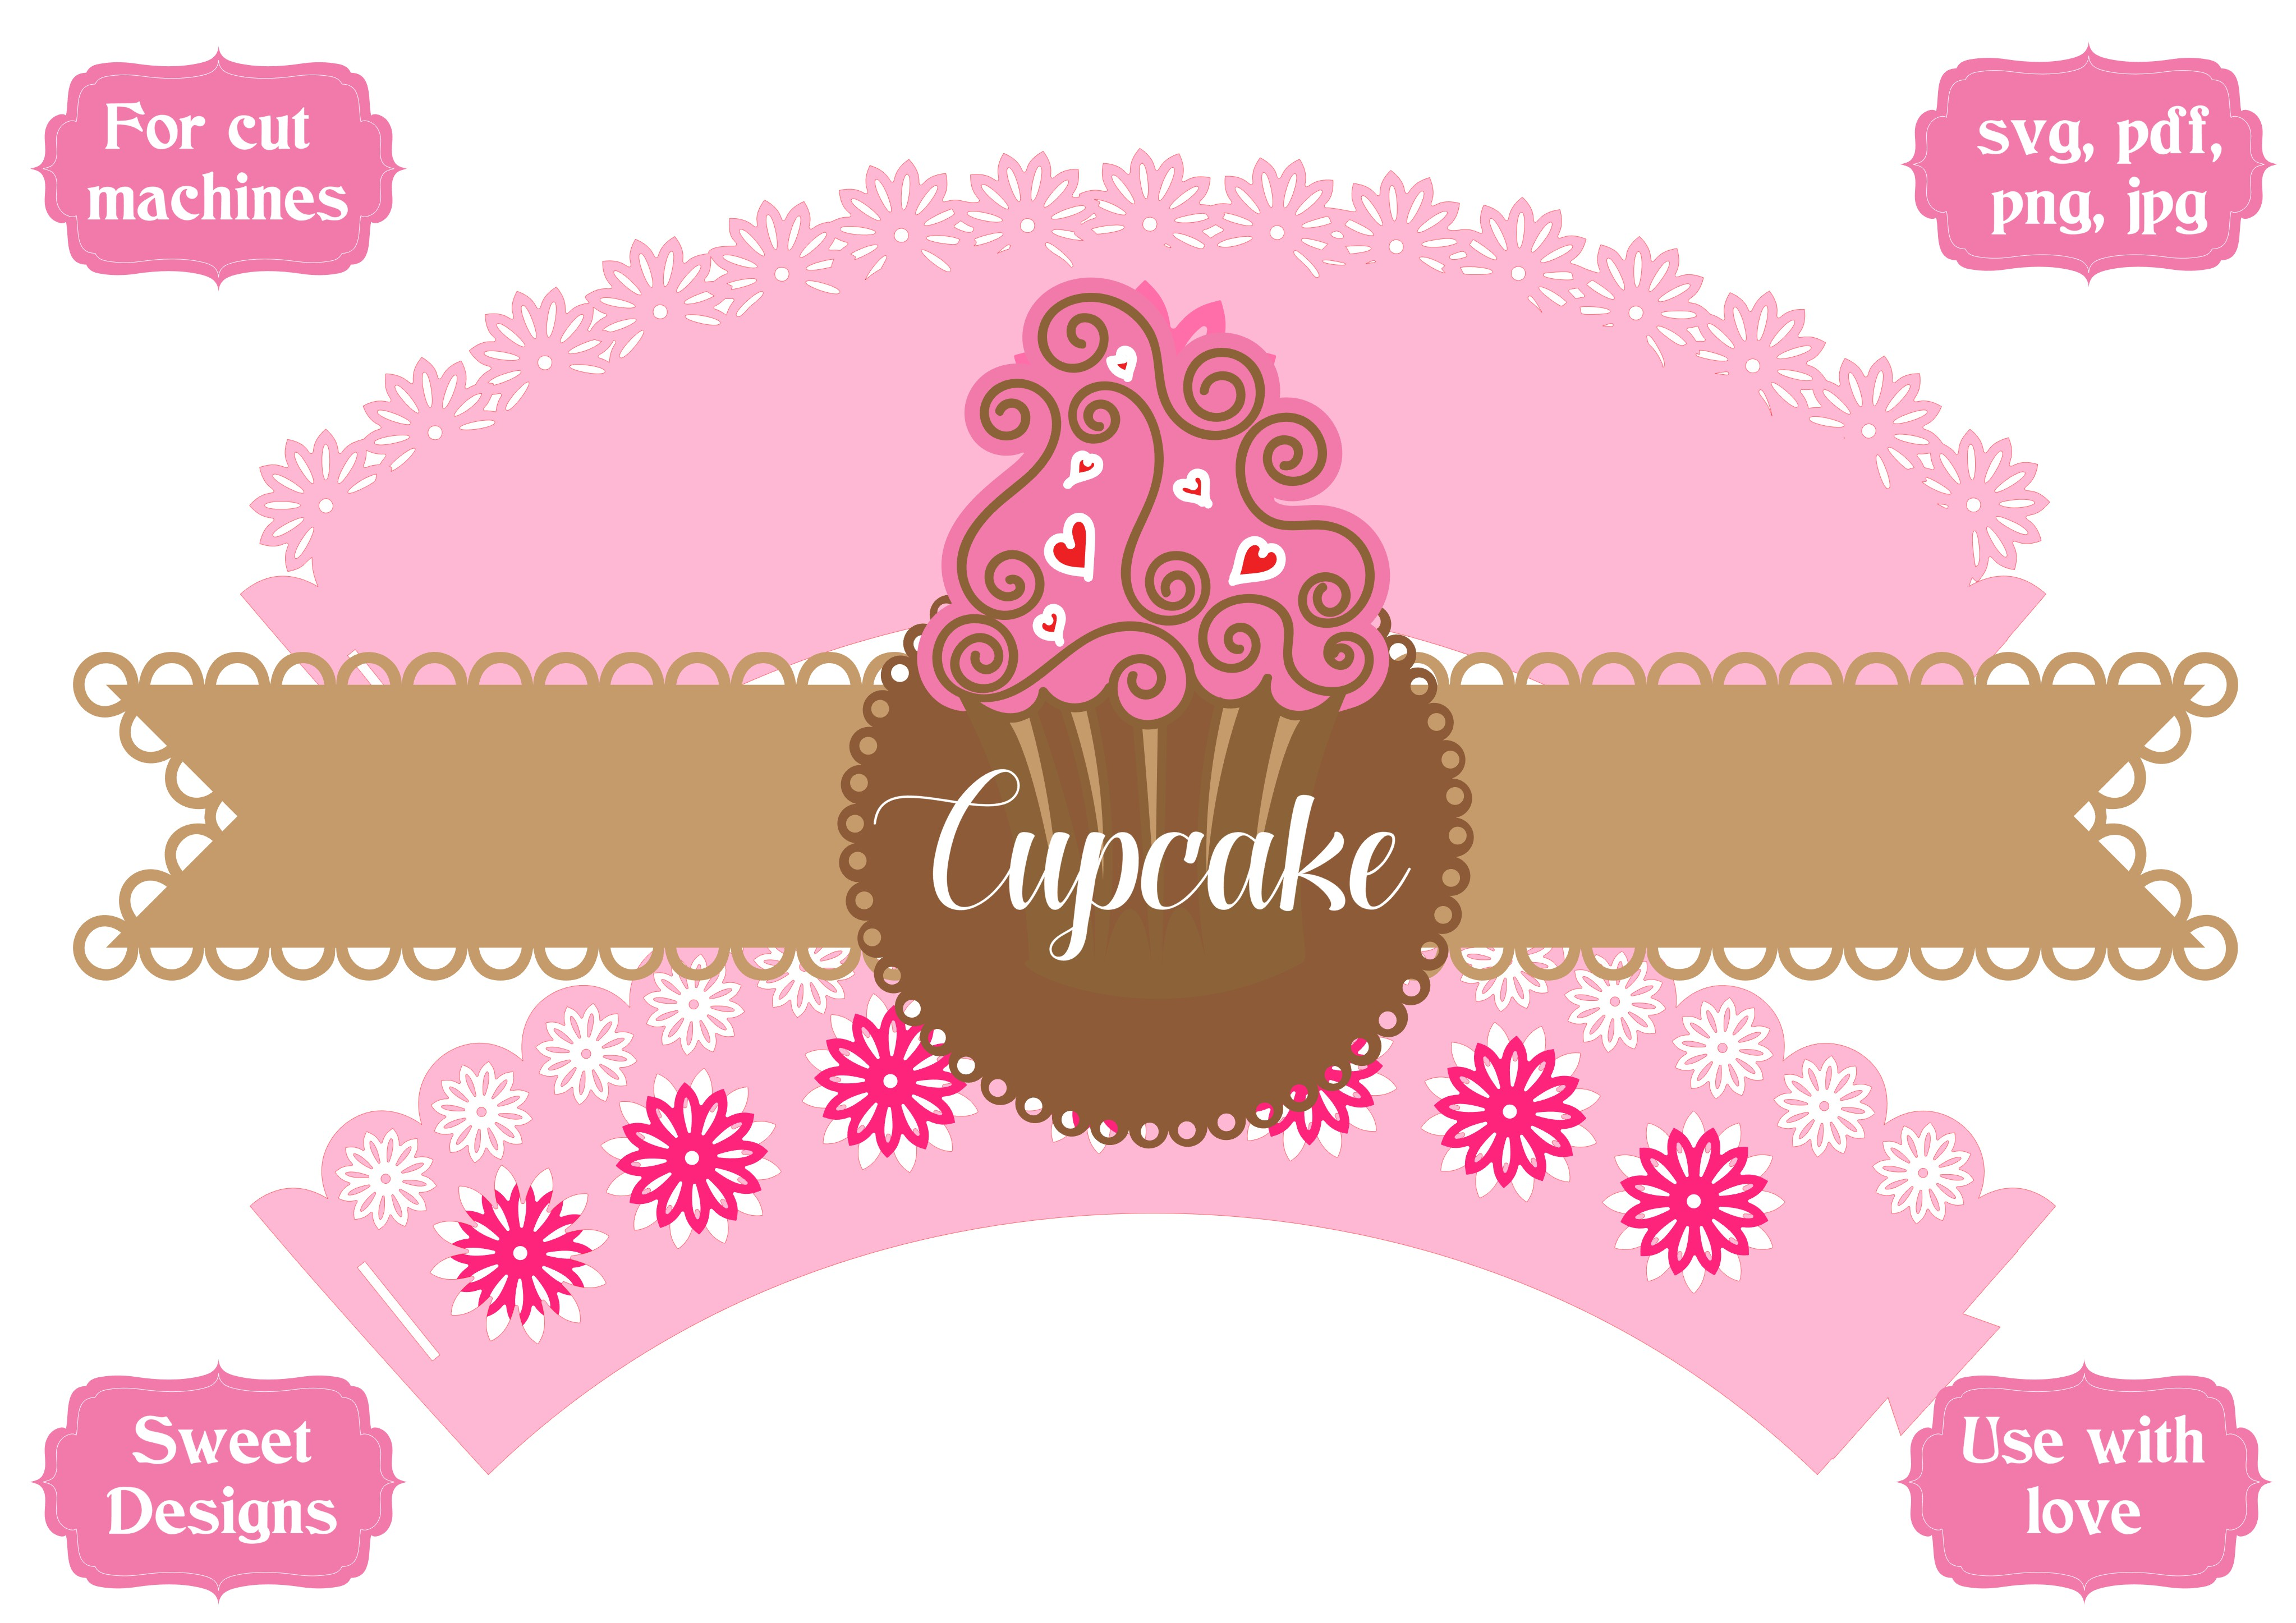 Download Free Cupcake Flower Wrapper Graphic By Jgalluccio Creative Fabrica for Cricut Explore, Silhouette and other cutting machines.